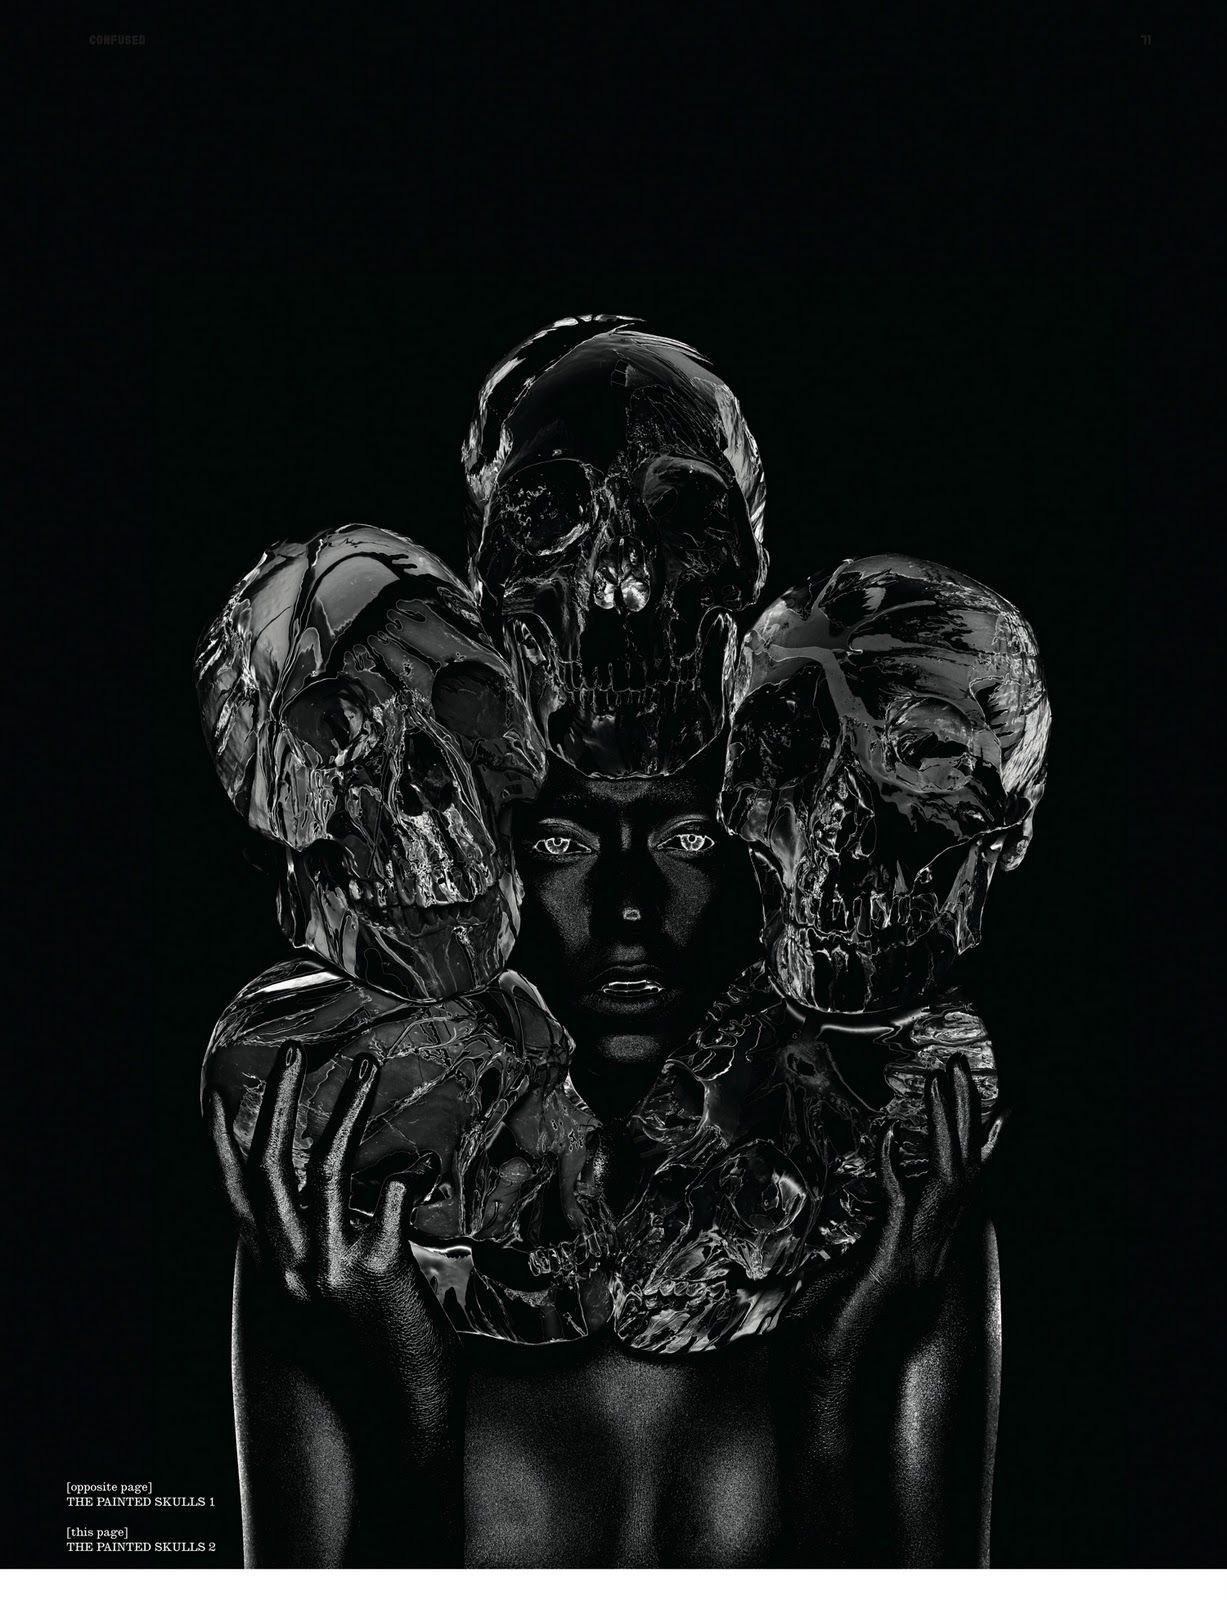 damien-hirst-rankin-exhibition-myths-monsters-and-legends